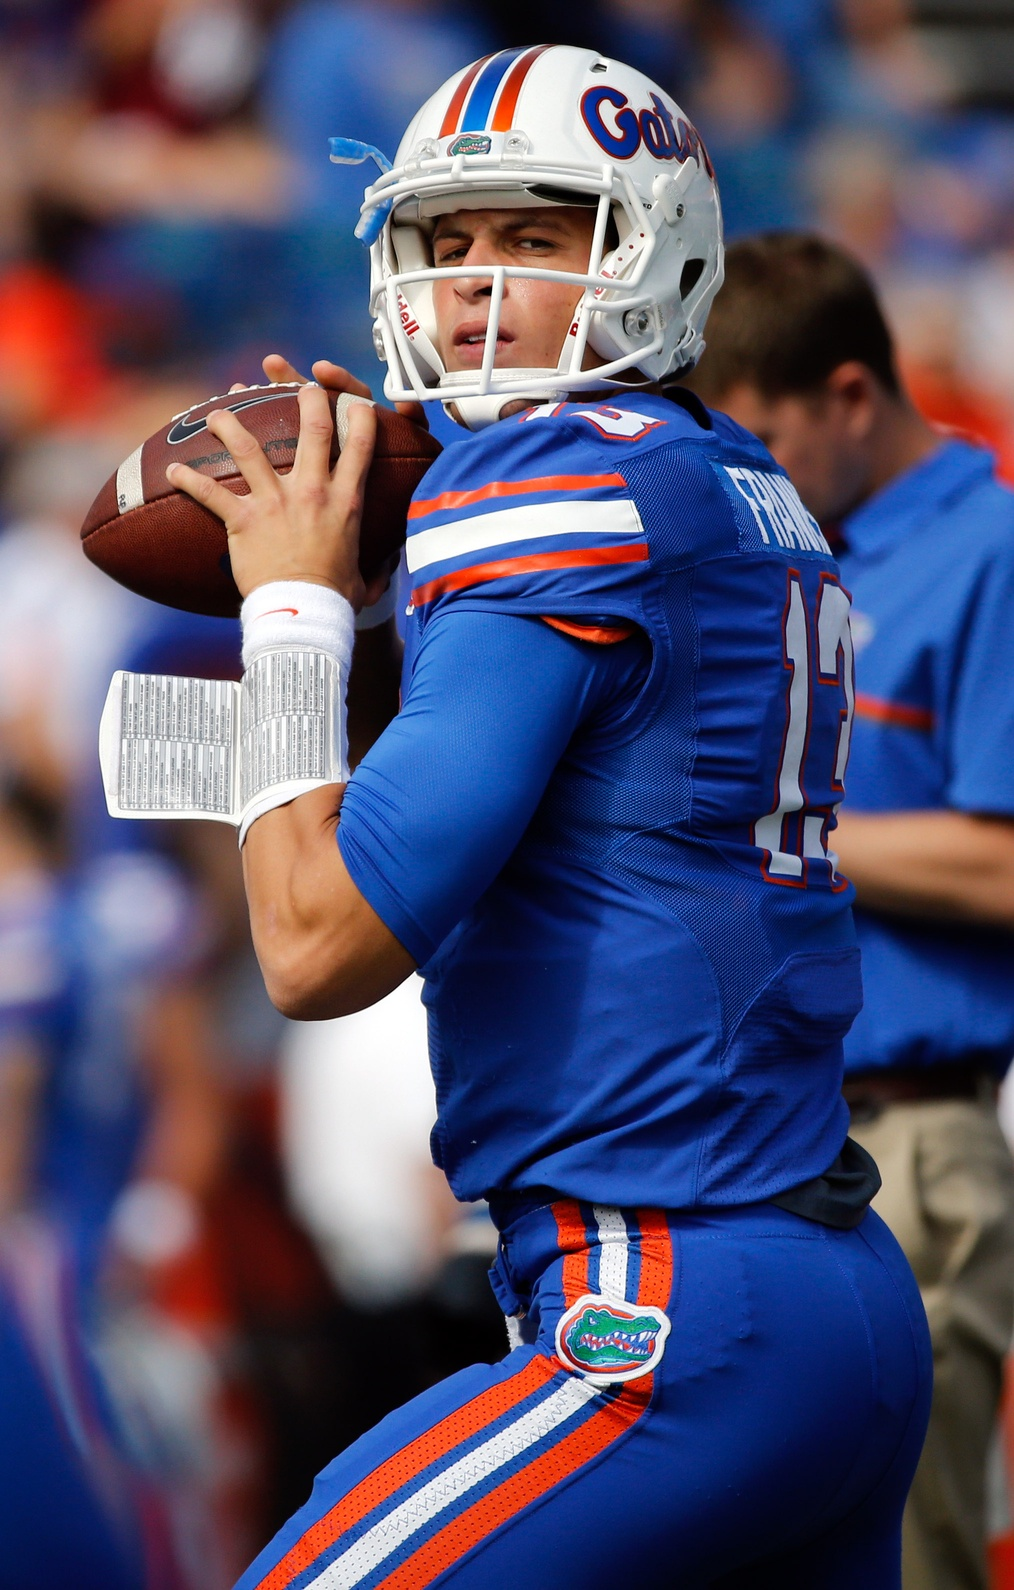 Michigan Wolverines and Florida Gators will have college ...